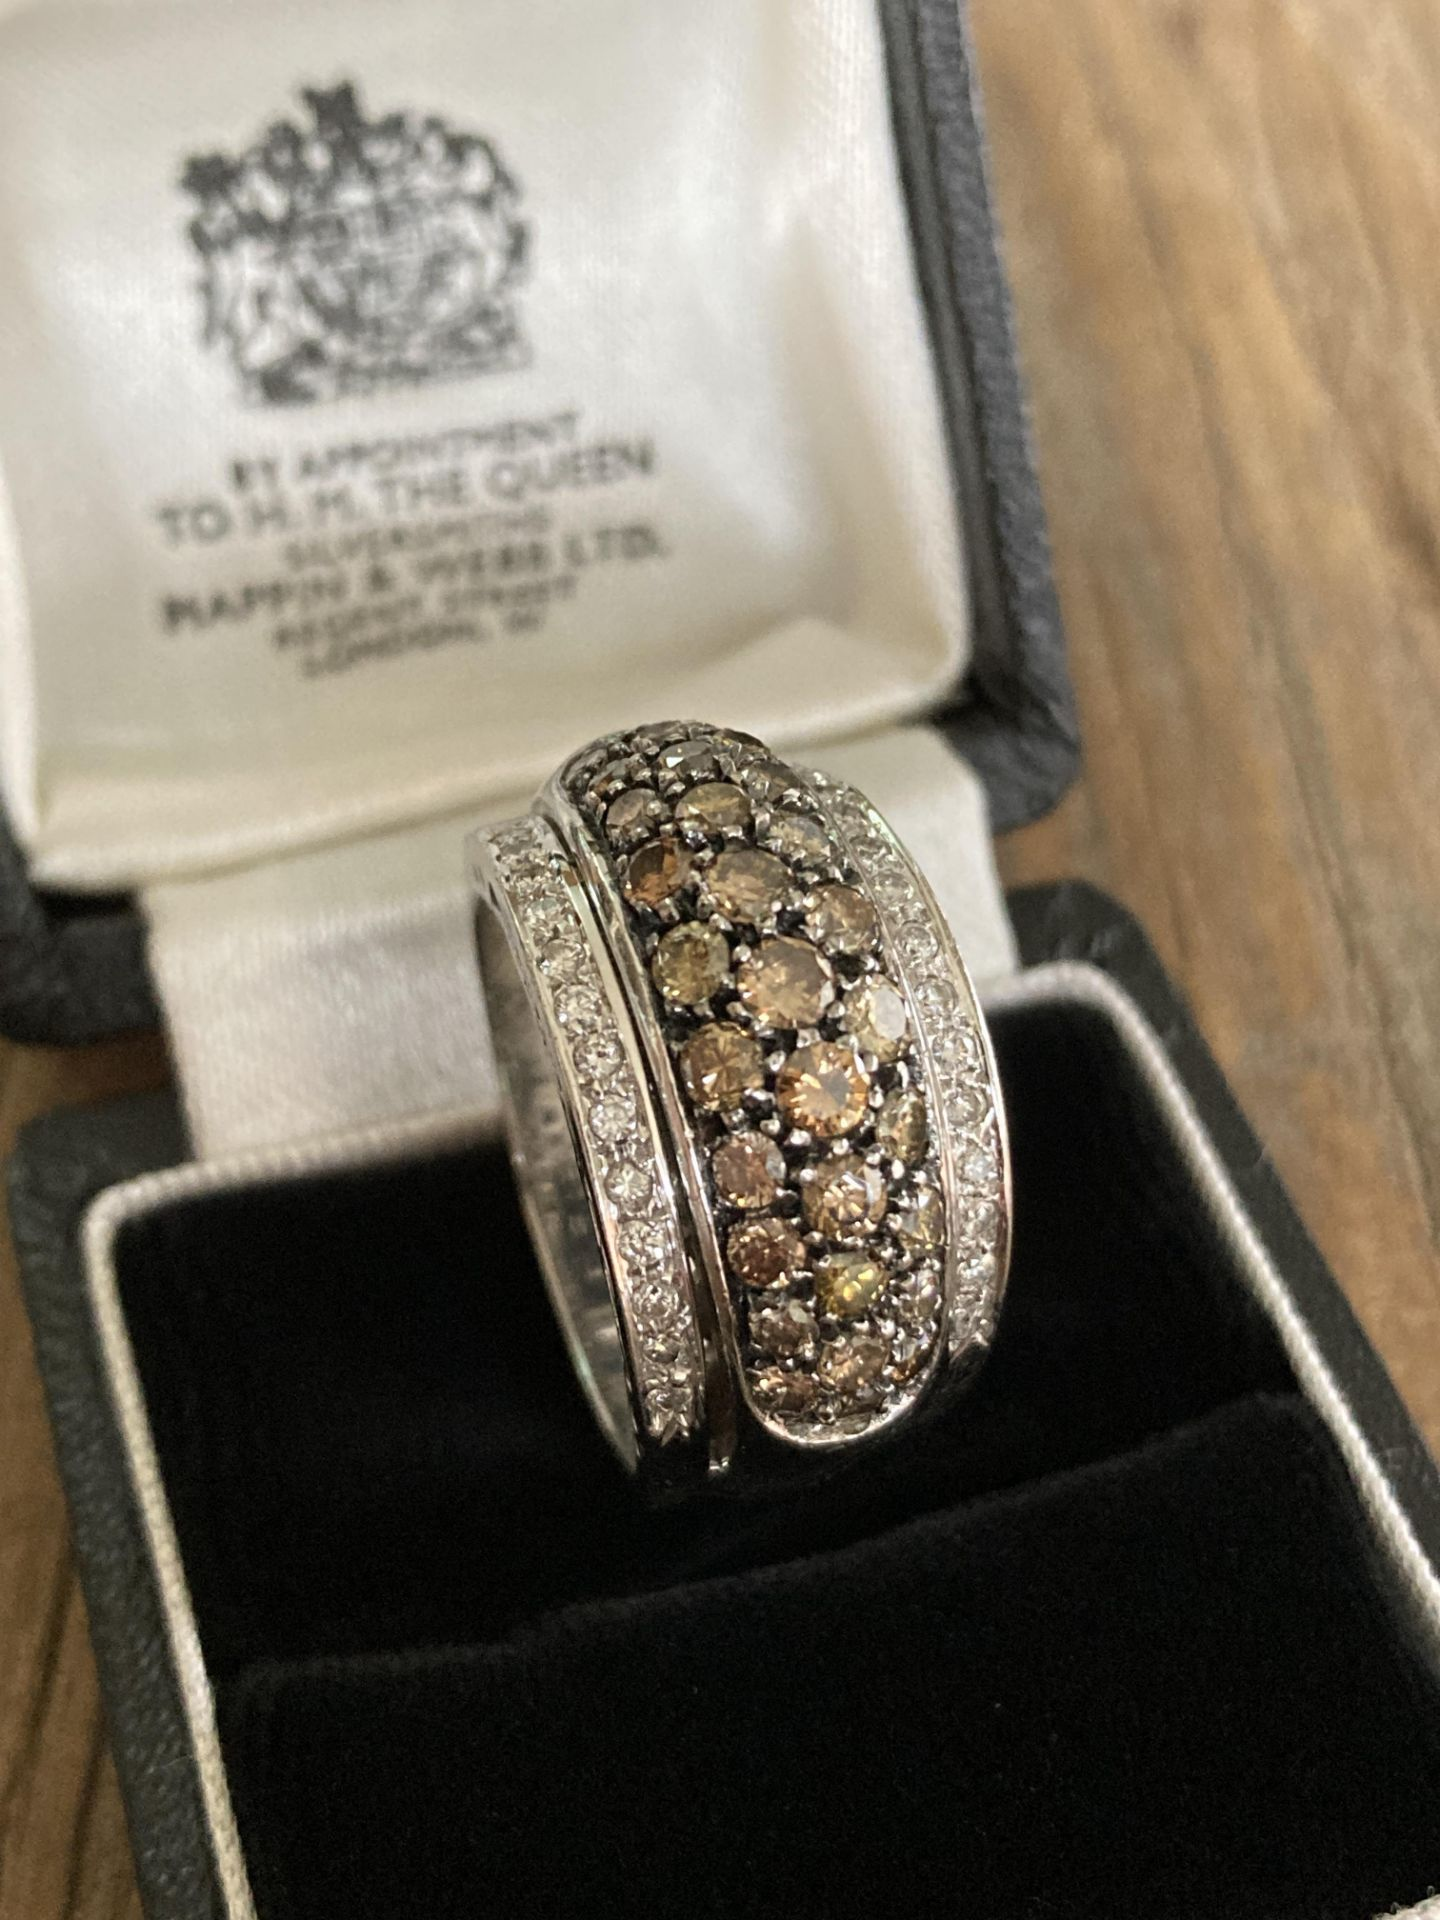 18CT WHITE GOLD 2.5CT BRILLIANT CUT DIAMOND RING (MIXED COLOUR DESIGN) - SIZE: T 1/2 / WEIGHT: 18.6G - Image 6 of 6